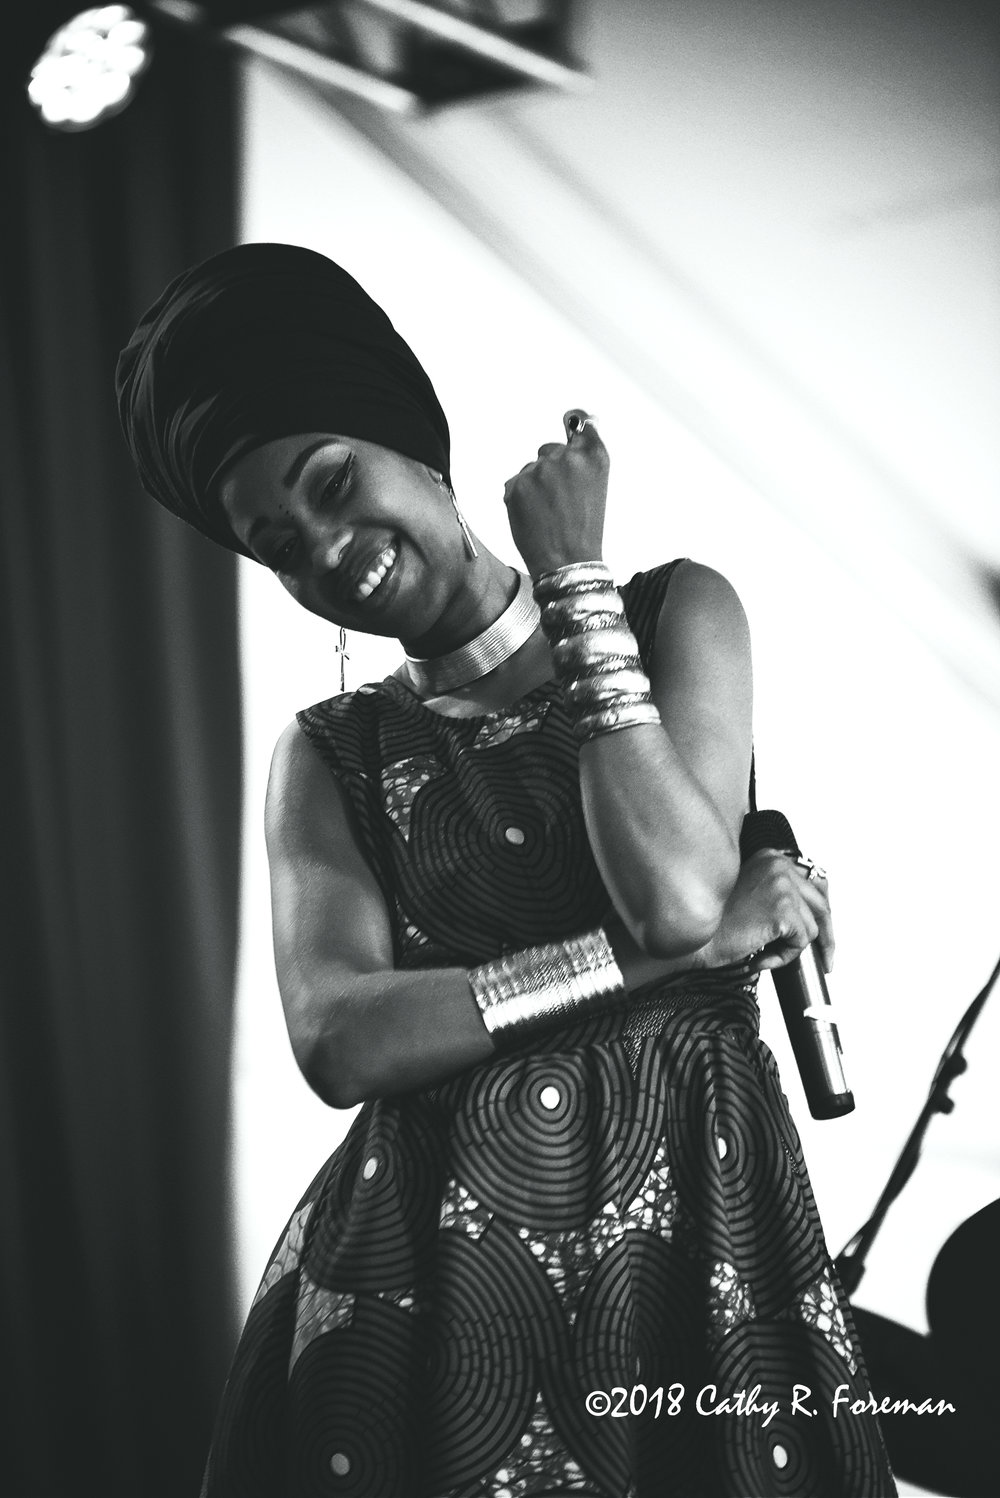 Jazzmeia Horn at the 2018 Richmond Jazz Festival - Image by: Cathy R. Foreman